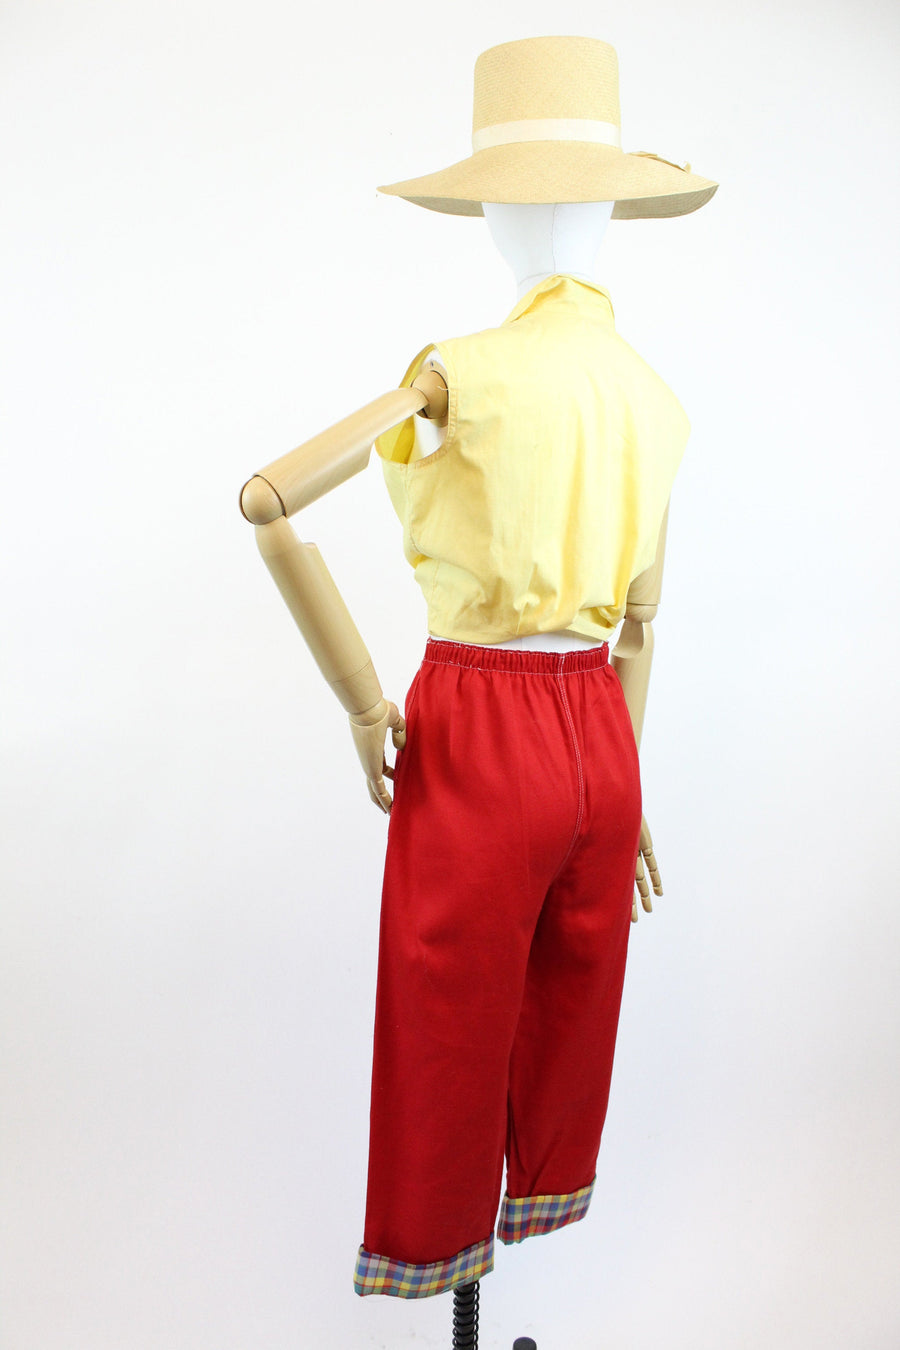 1950s NWT red denim pedal pusher pants medium | vintage cropped cuffed capris